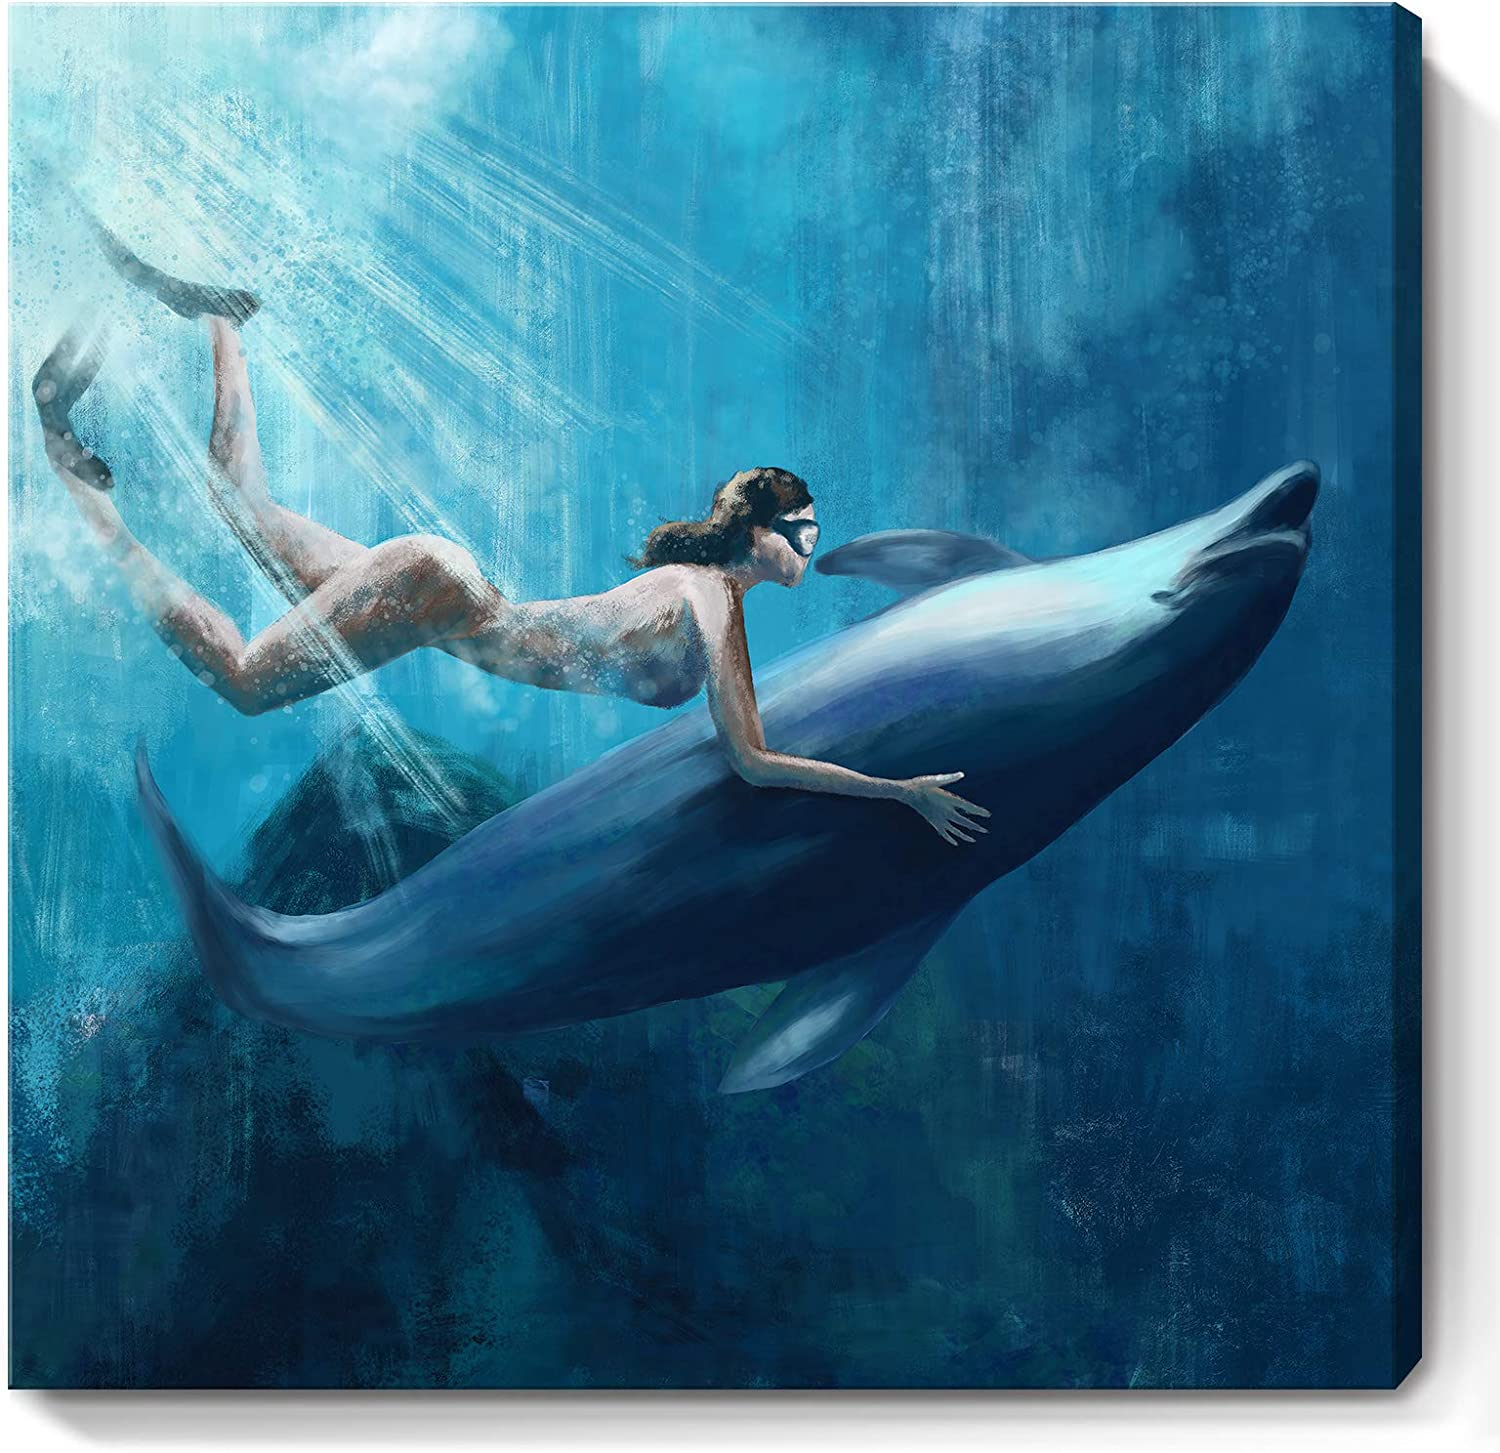 Blue Ocean Wall Art for Bathroom Decor Sea Artwork Coastal Themed Dolphins Human and Nature Underwater Picture Diving Canvas Prints for Bedroom 14X14inch